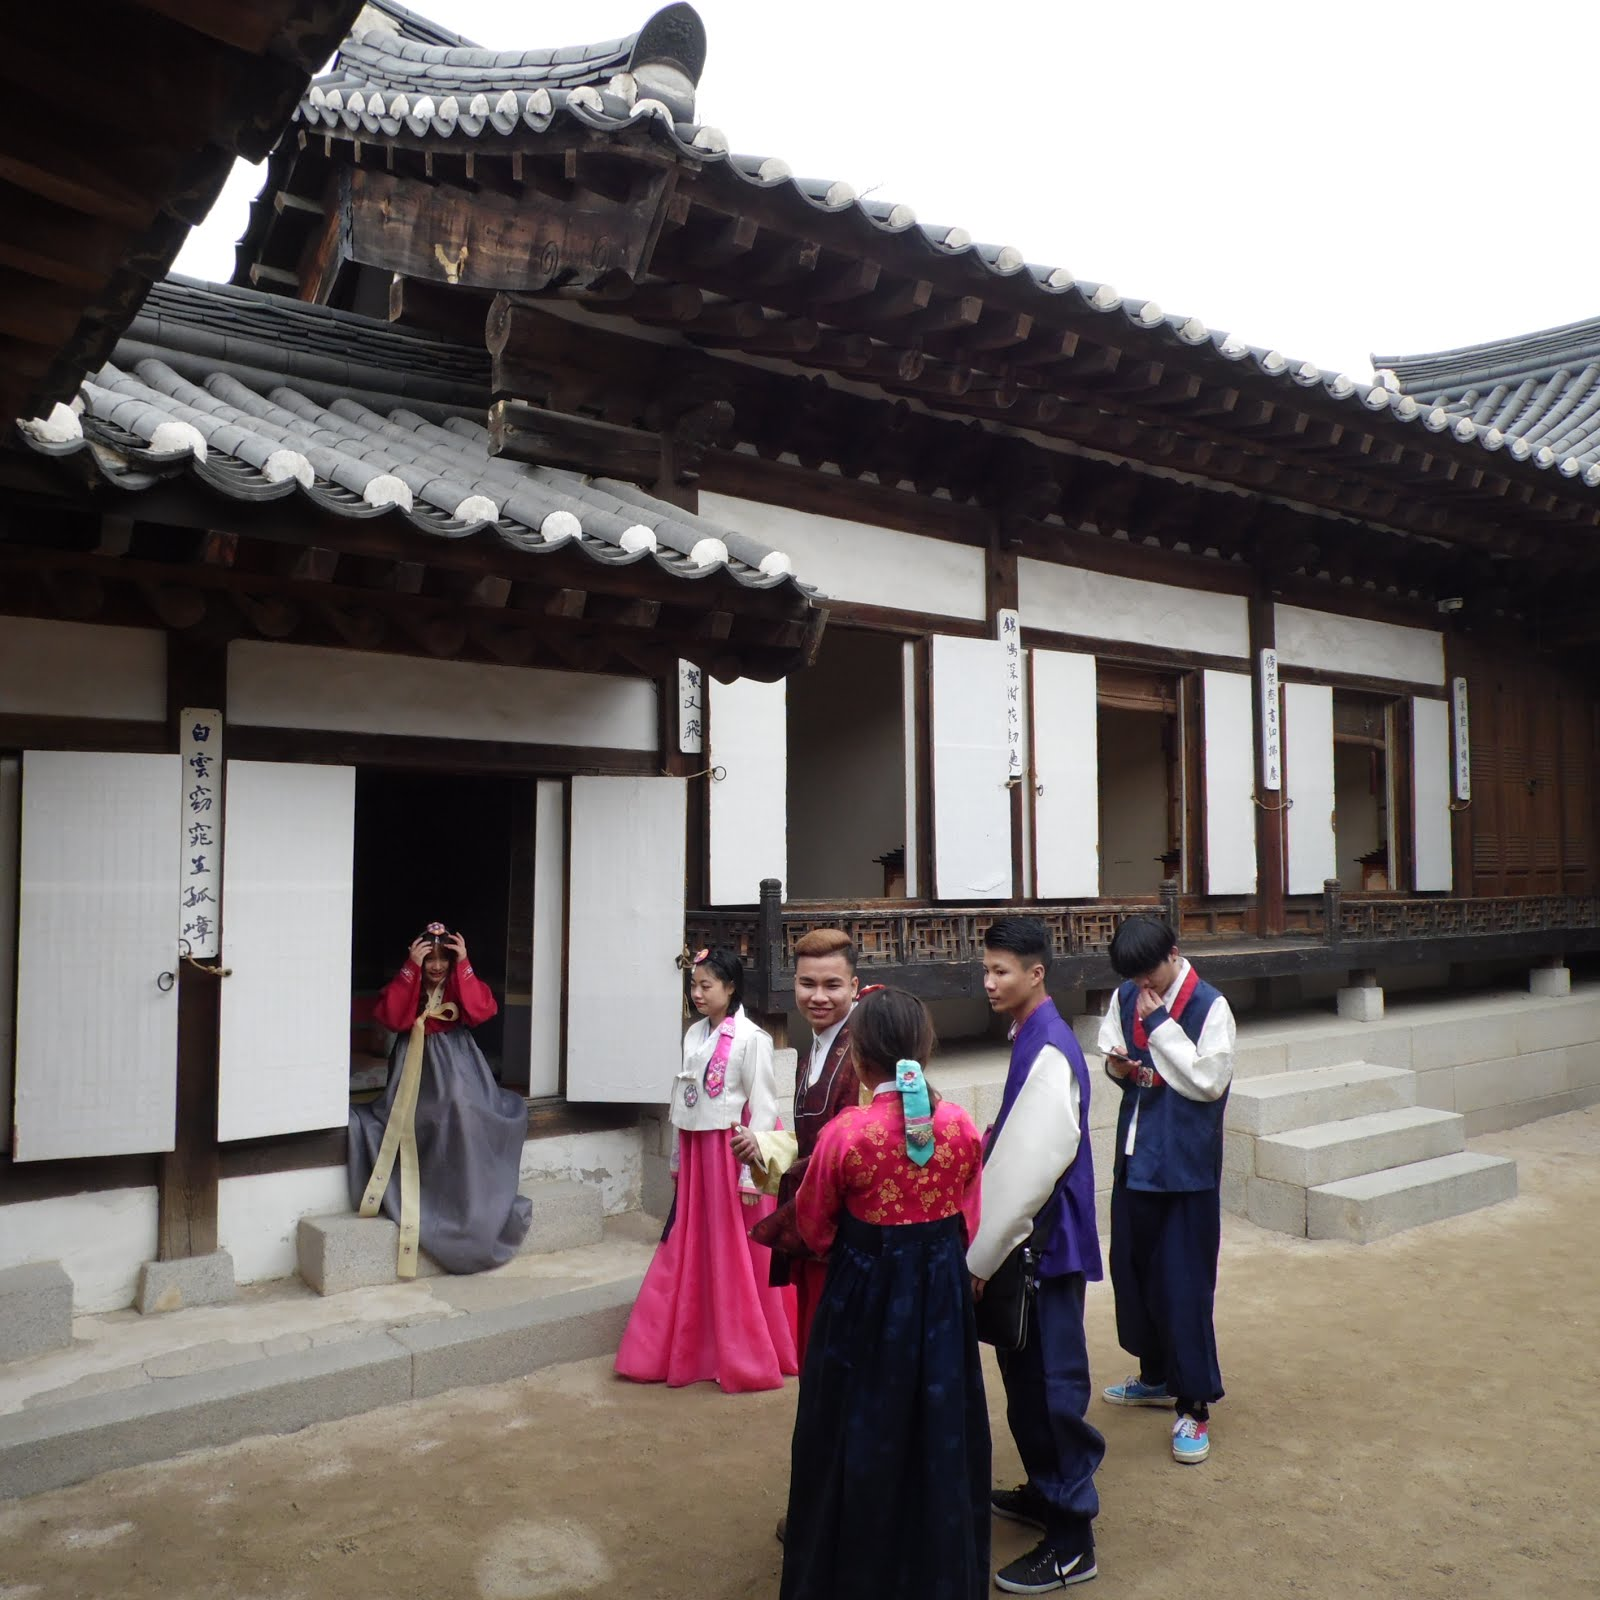 Namsangool Hanok Village